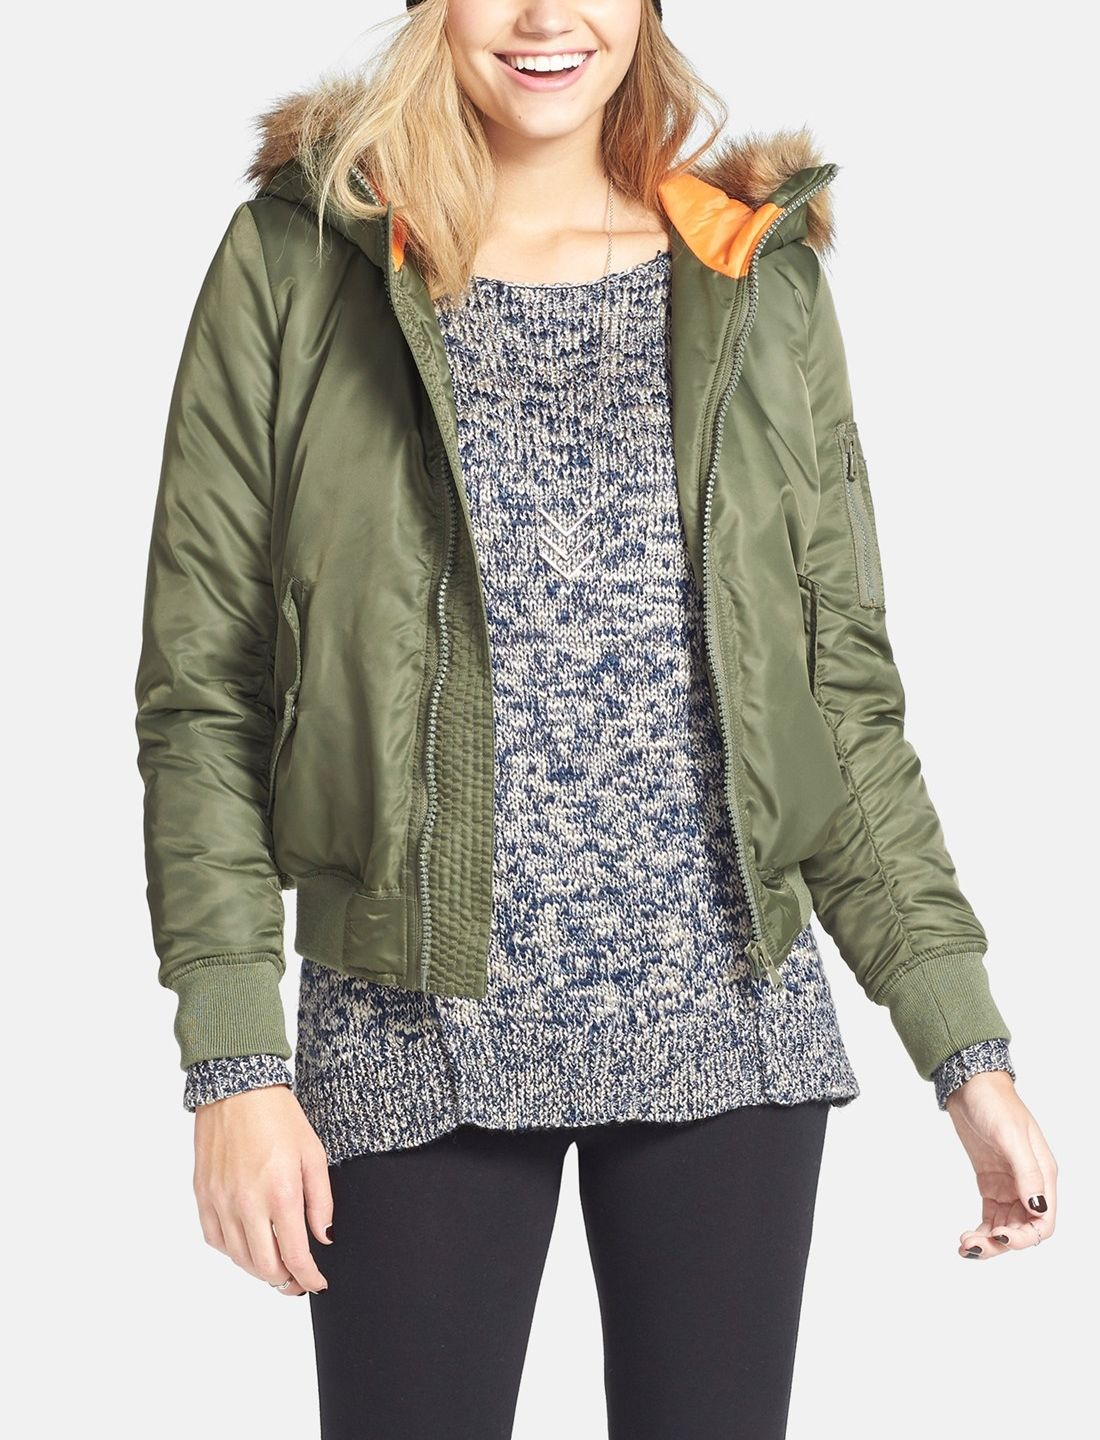 Collection B Twill Bomber Jacket With Faux Fur Trim Hood Juniors Nordstrom Bomber Jacket Jackets Faux Fur Bomber Jacket [ 1440 x 1100 Pixel ]